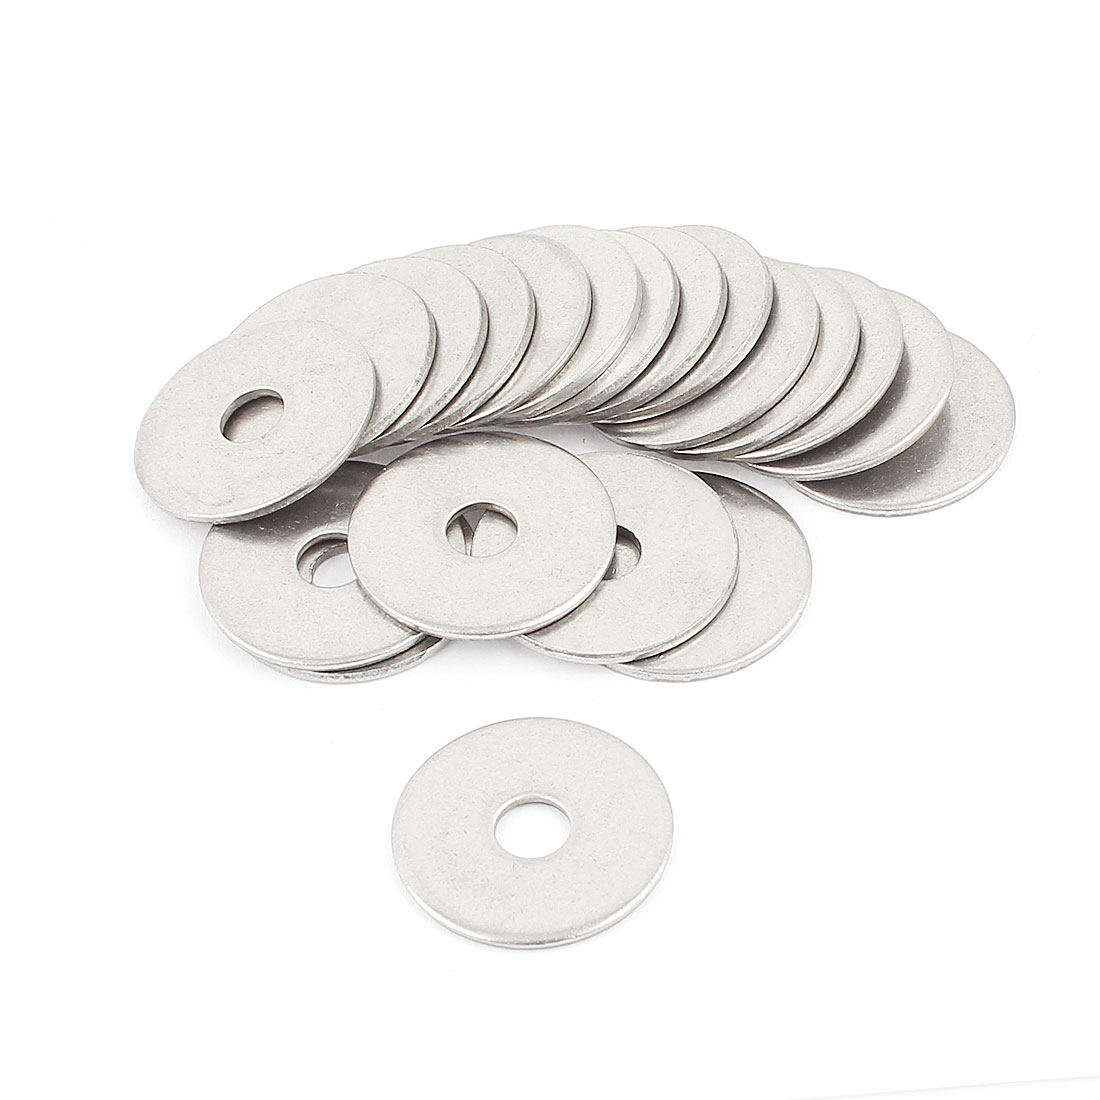 Crown Bolt 304 Stainless Steel Flat Washers Gasket 6x25x1.5mm 20pcs